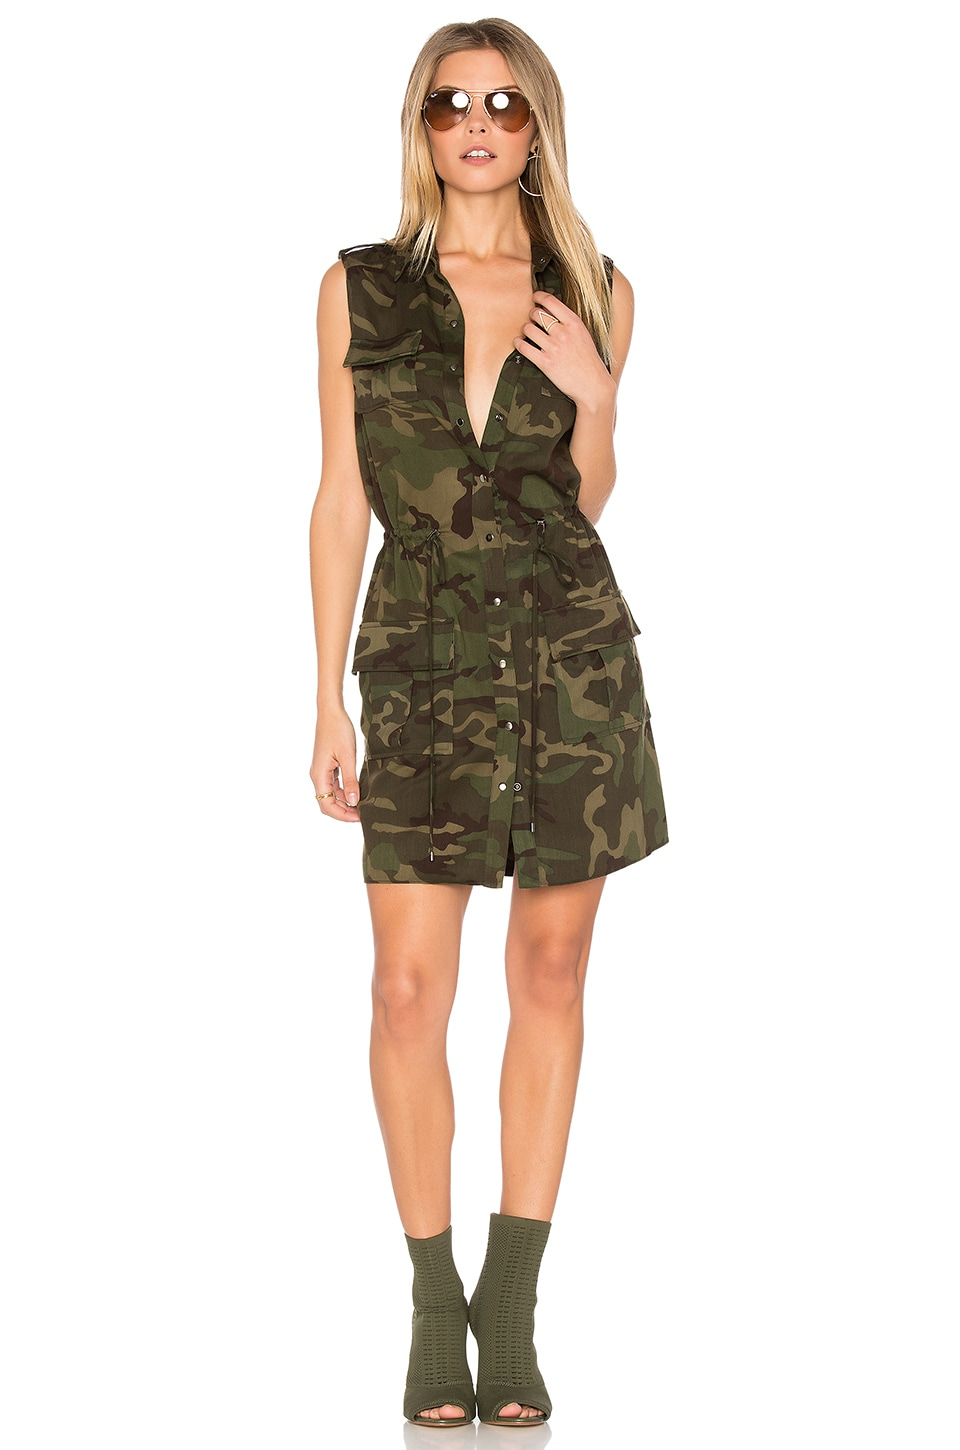 The Safari Dress by Haute Hippie